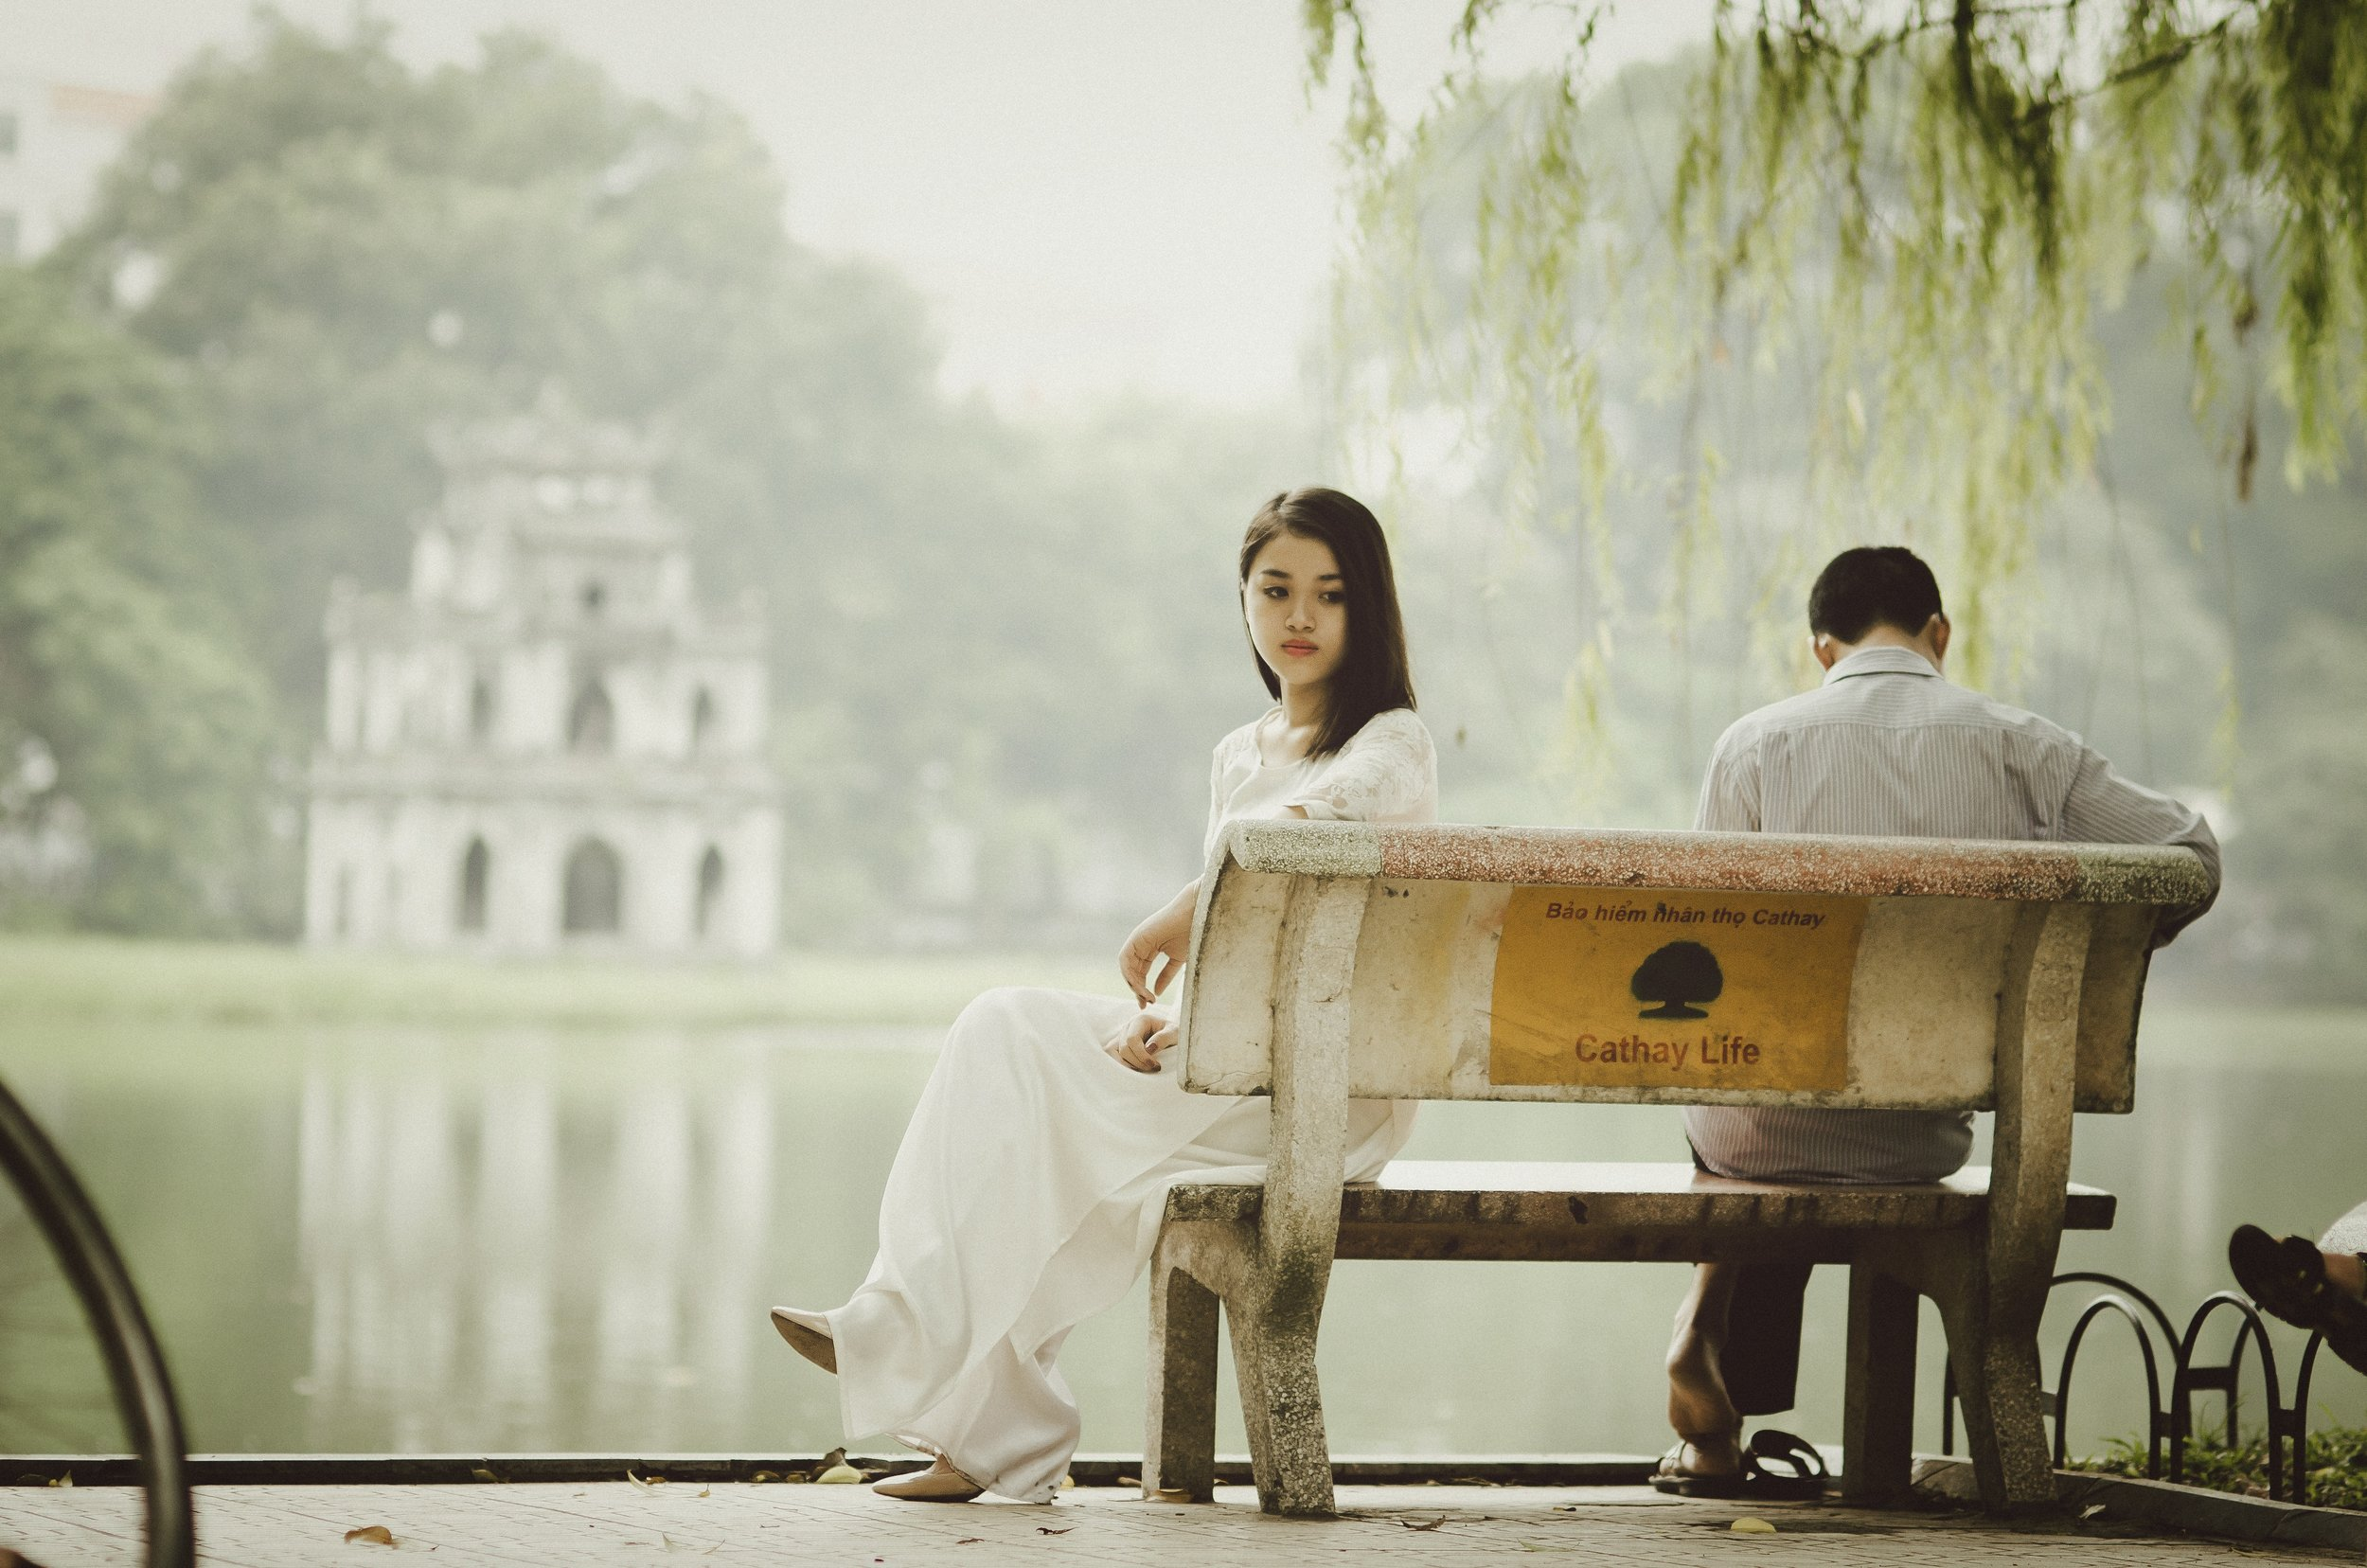 Distant Couple - Couple Is Emotionally Distancing From One Another After Conflict.